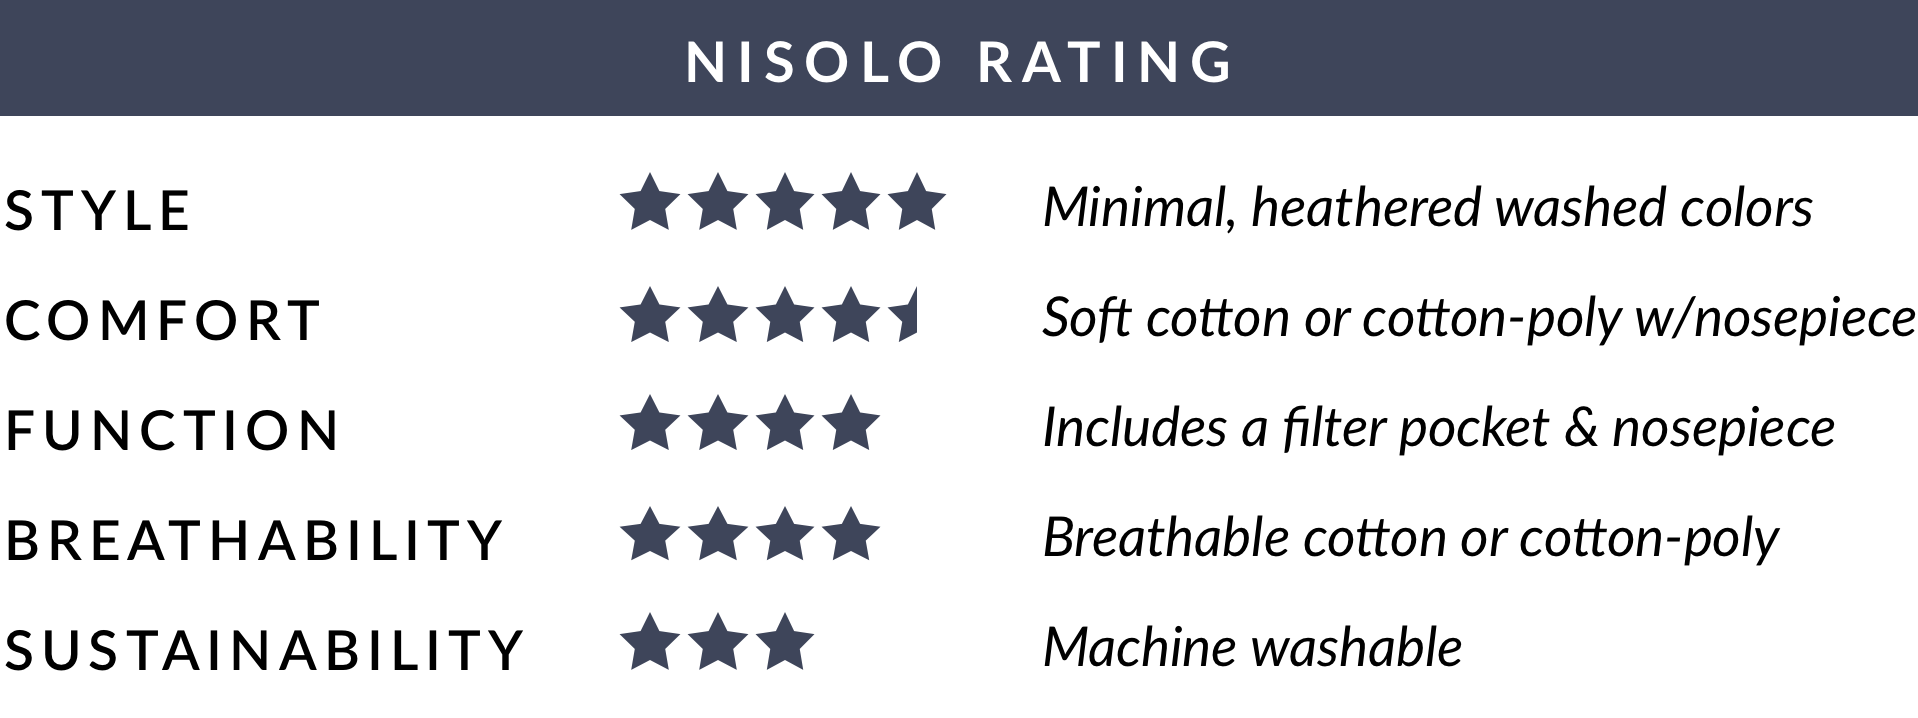 Nisolo Rating of Hedley & Bennett Wake Up & Fight Mask - Dark Blue/Light Blue/Beige (3) Pack: Average of 4.1 out of 5 stars